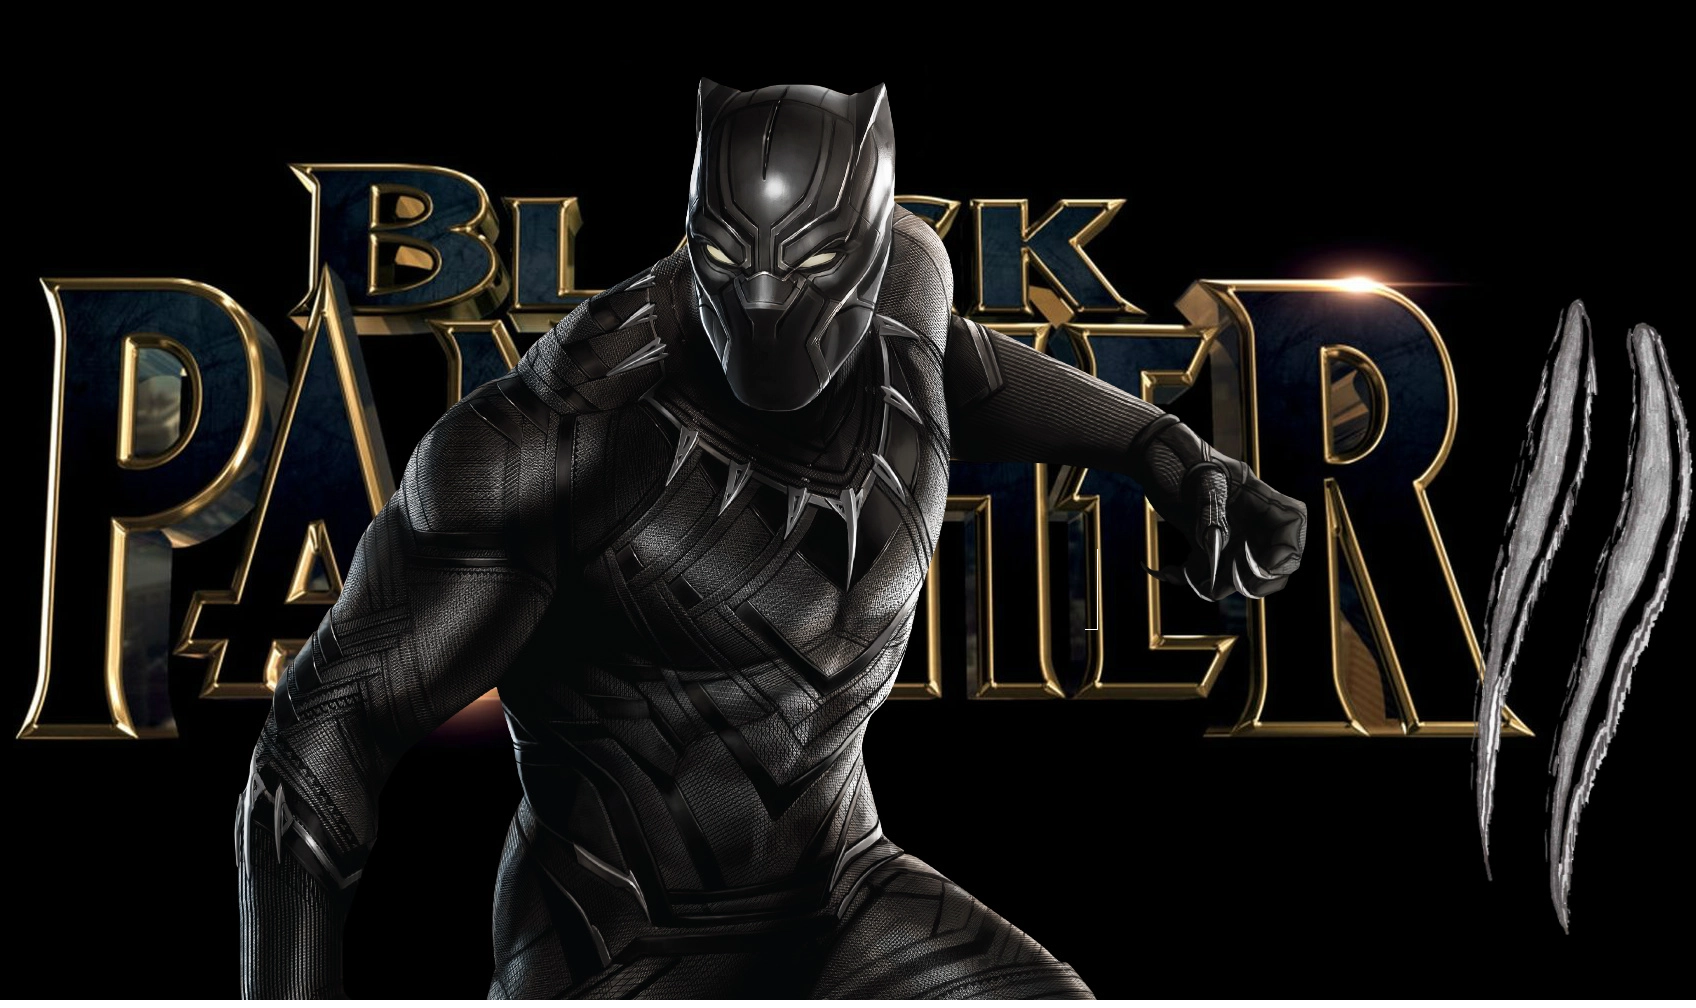 Black Panther 2 leaks